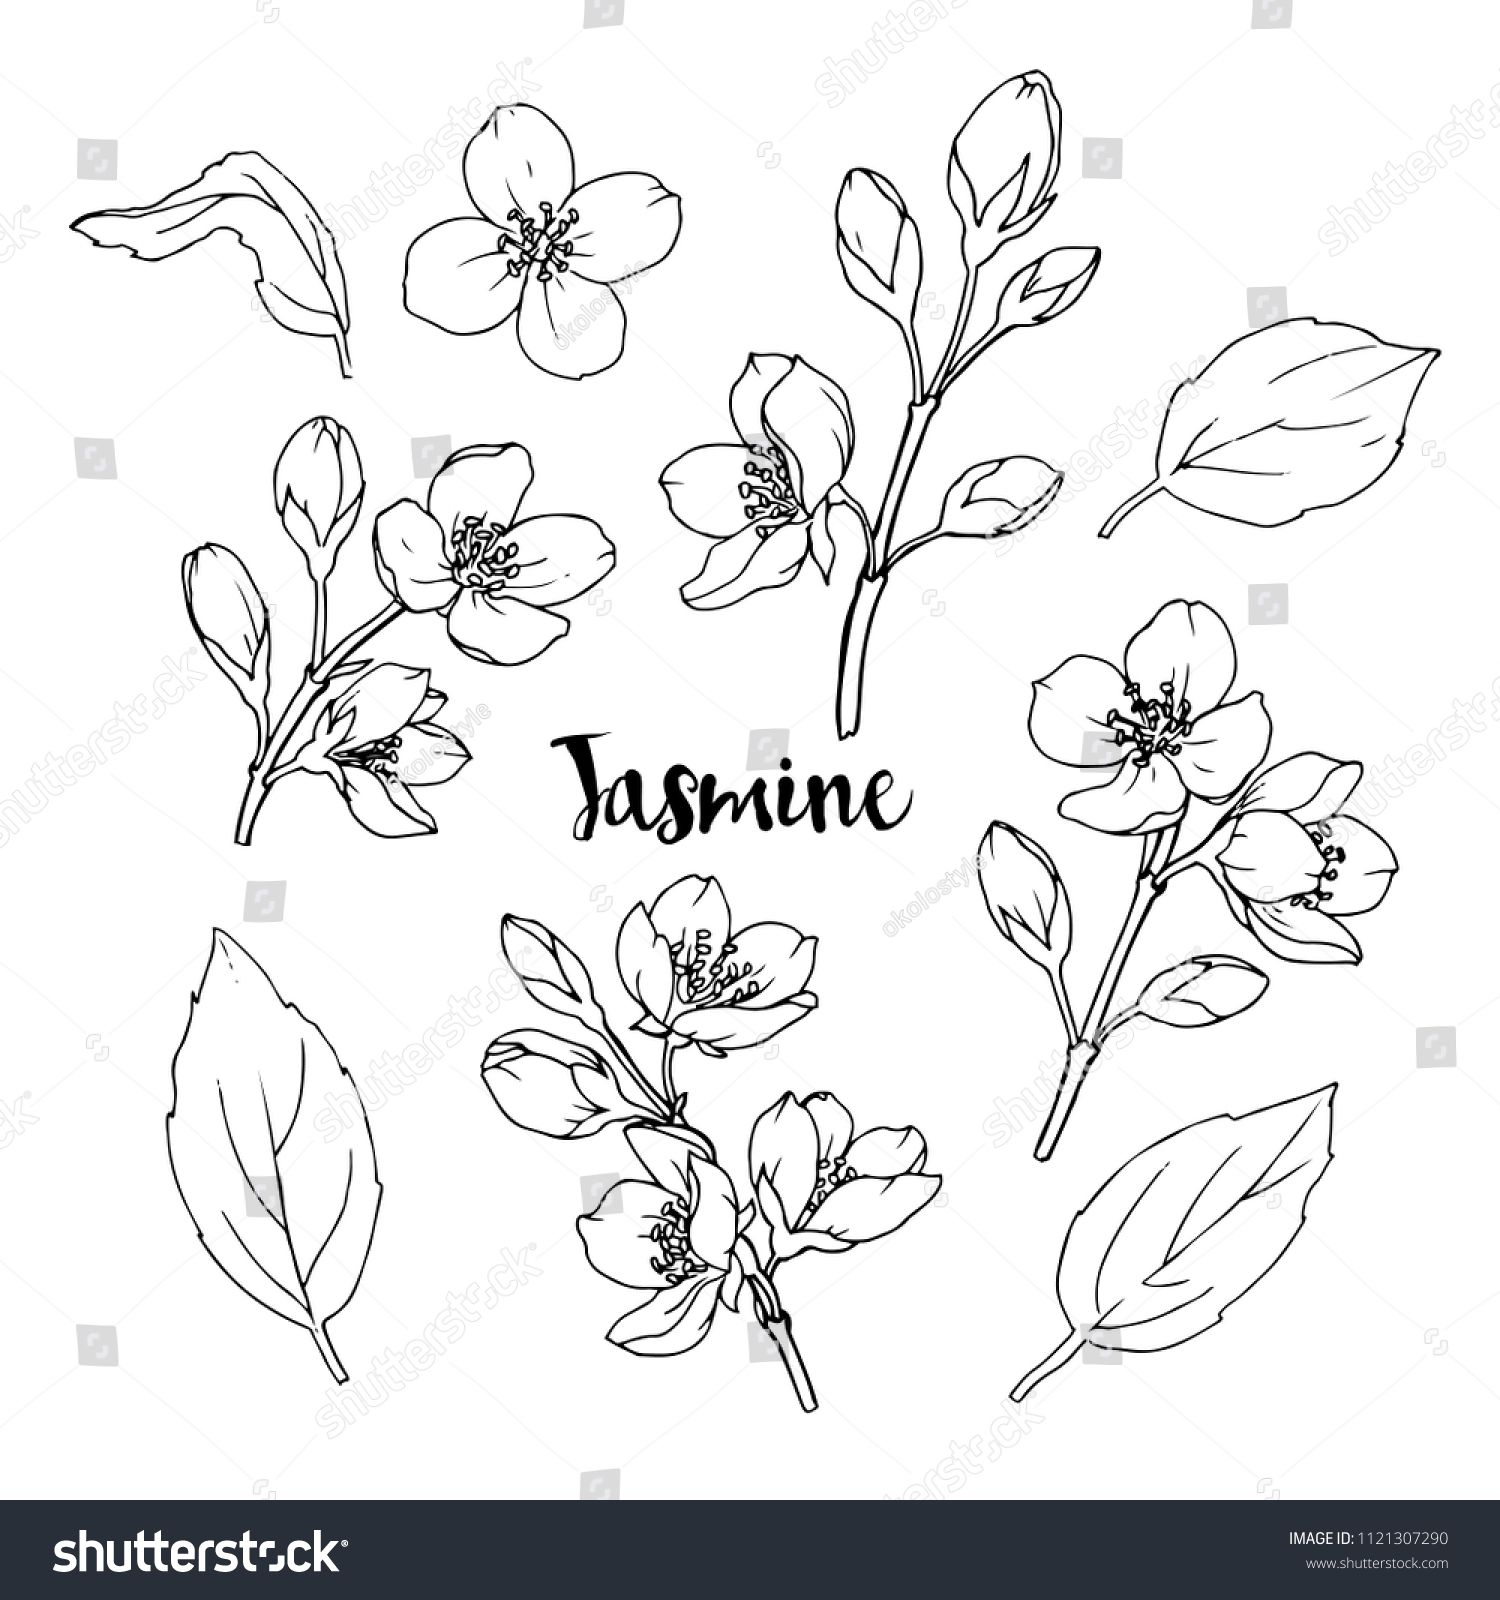 Ink Pencil The Leaves And Flowers Of Jasmine Isolate Line Art